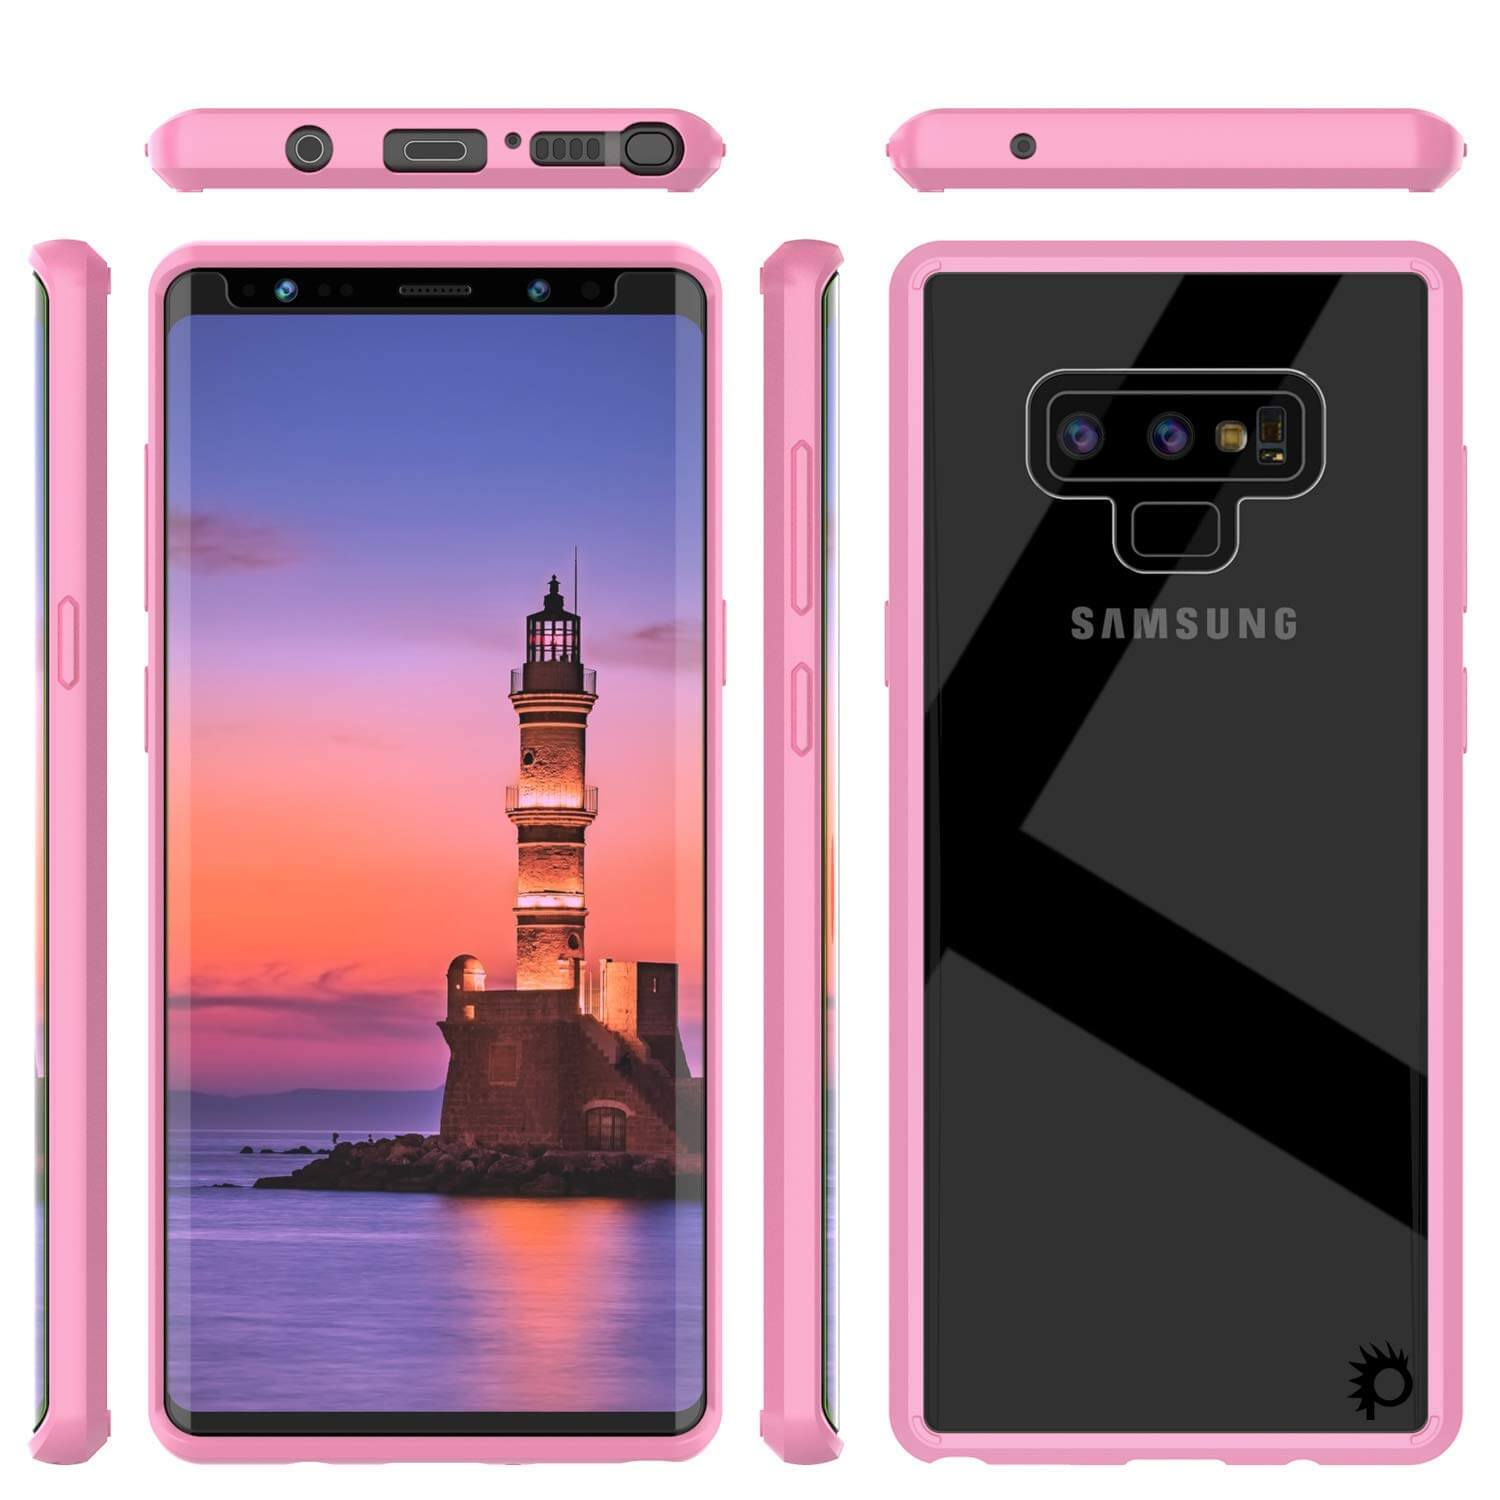 Galaxy Note 9 Punkcase Lucid-2.0 Series Slim Fit Armor Pink Case Cover